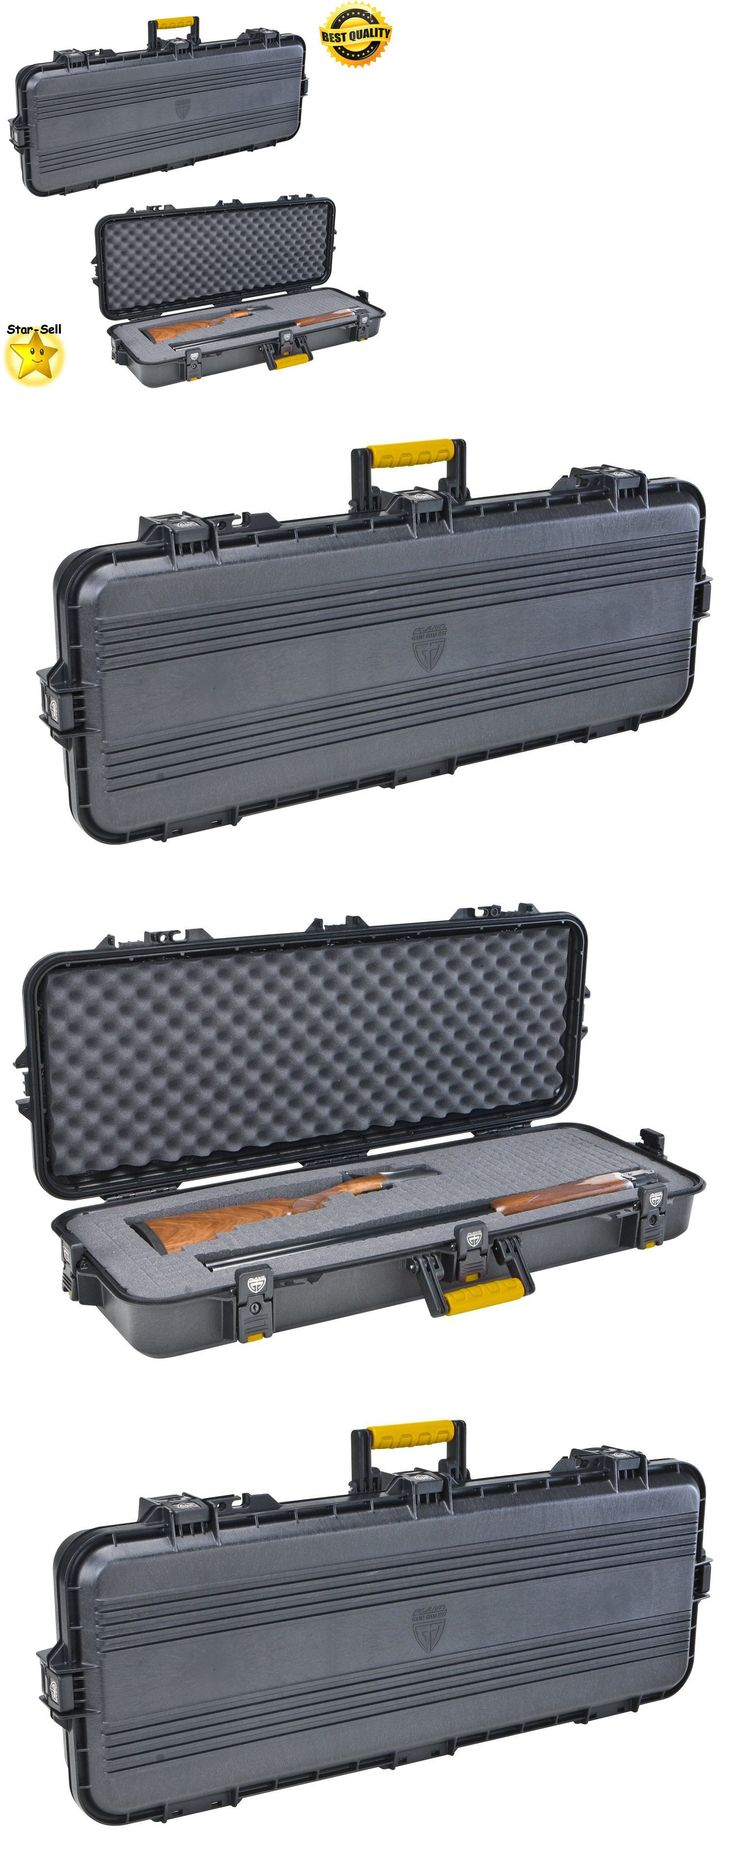 Cases 73938: Tactical Rifle Case Portable Gun Shotgun Holder Guard Locking Weather Proof Box -> BUY IT NOW ONLY: $74.21 on eBay!